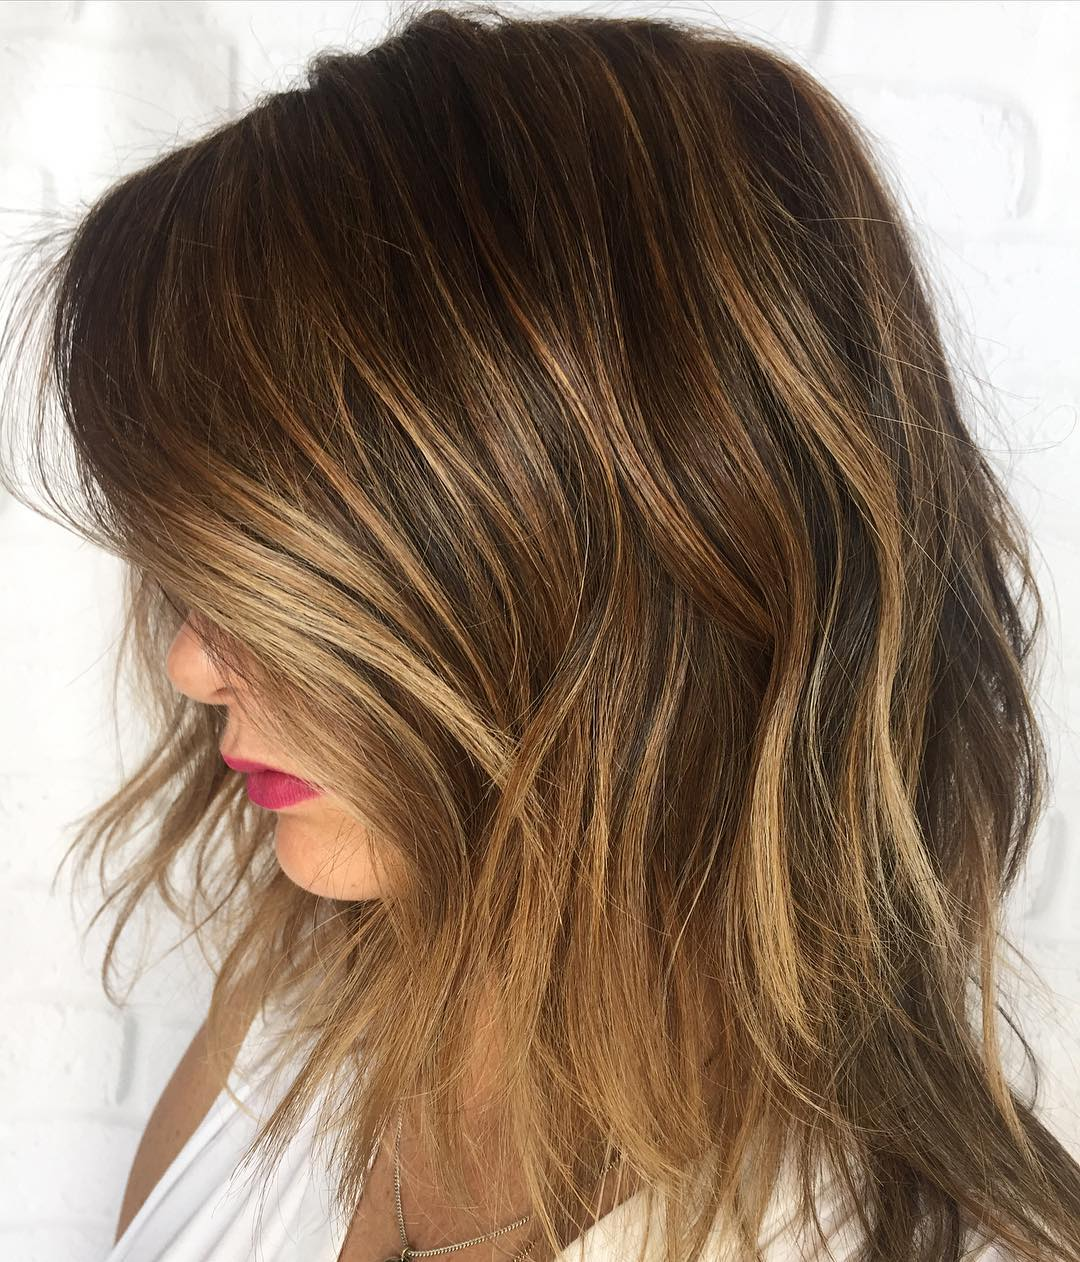 Choppy Medium Hair With Caramel Highlights